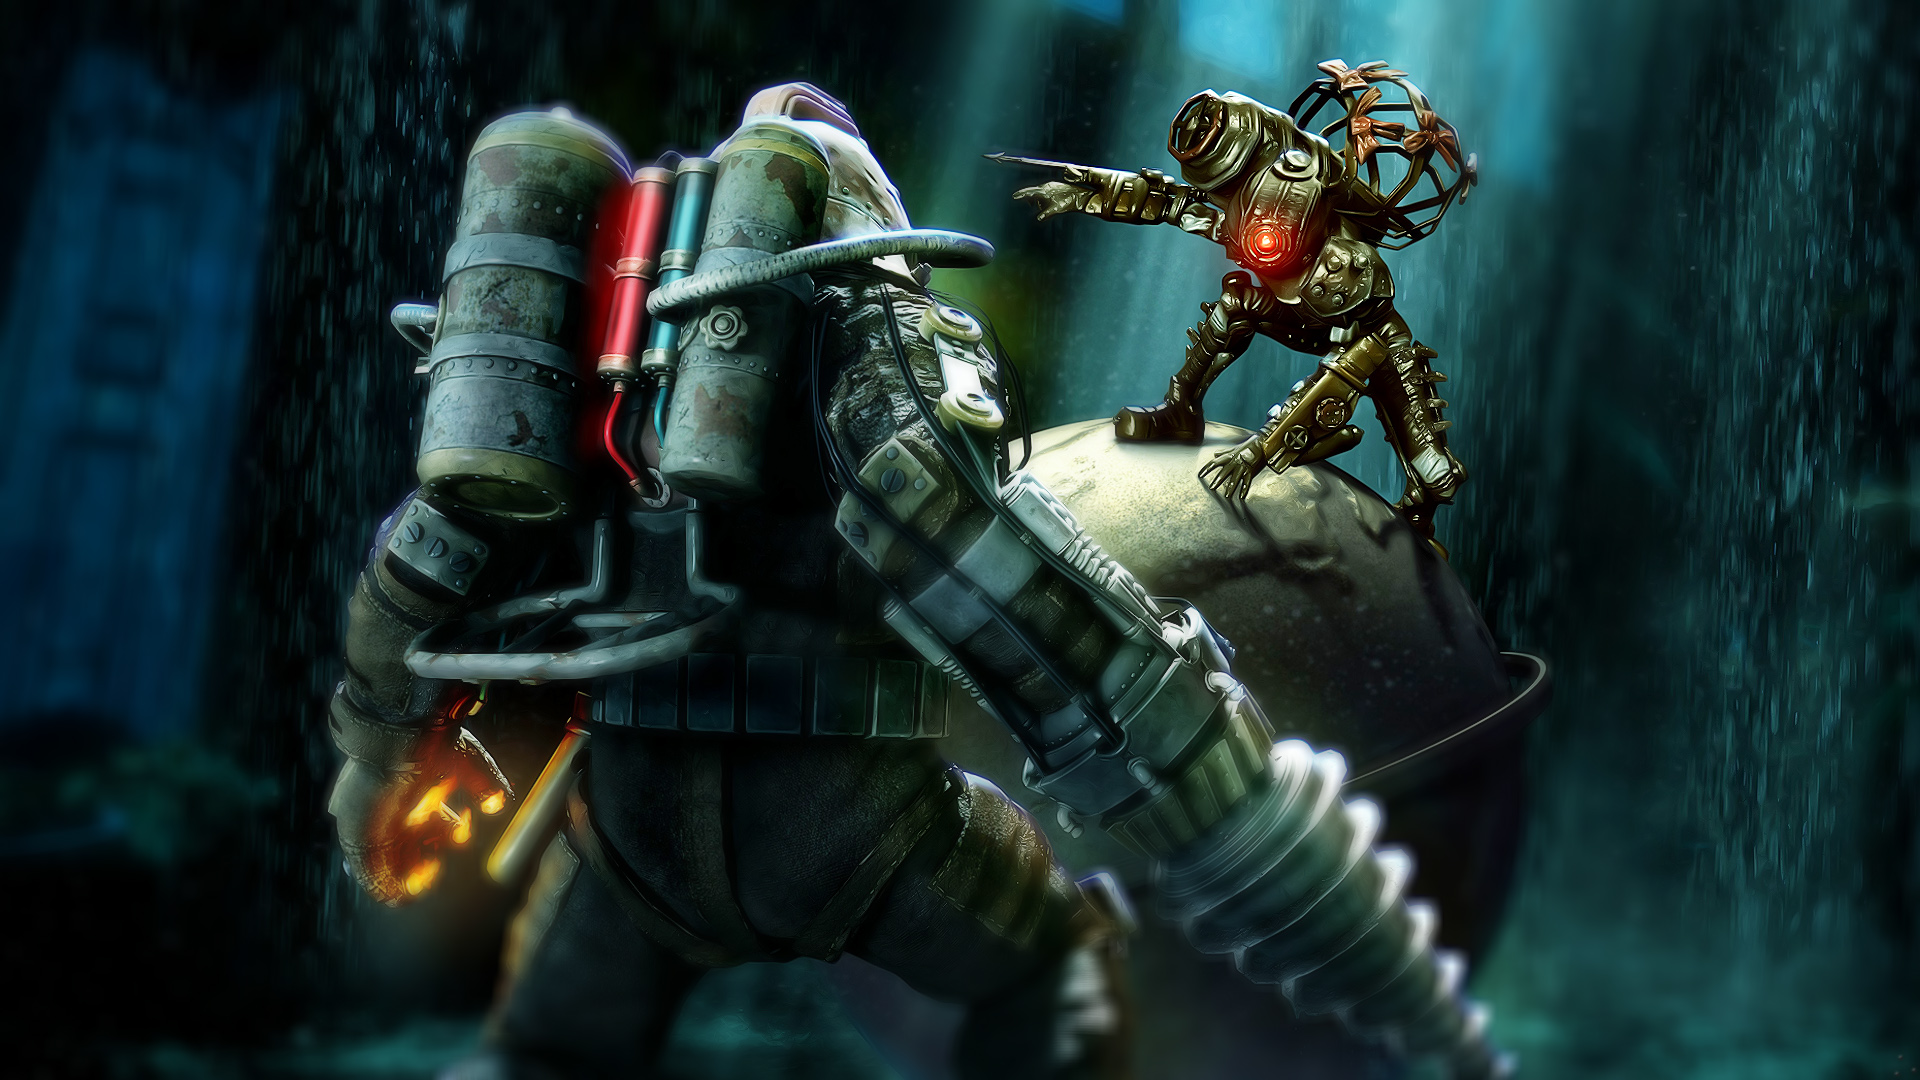 Bioshock Game Wallpapers HD Wallpapers 1920x1080